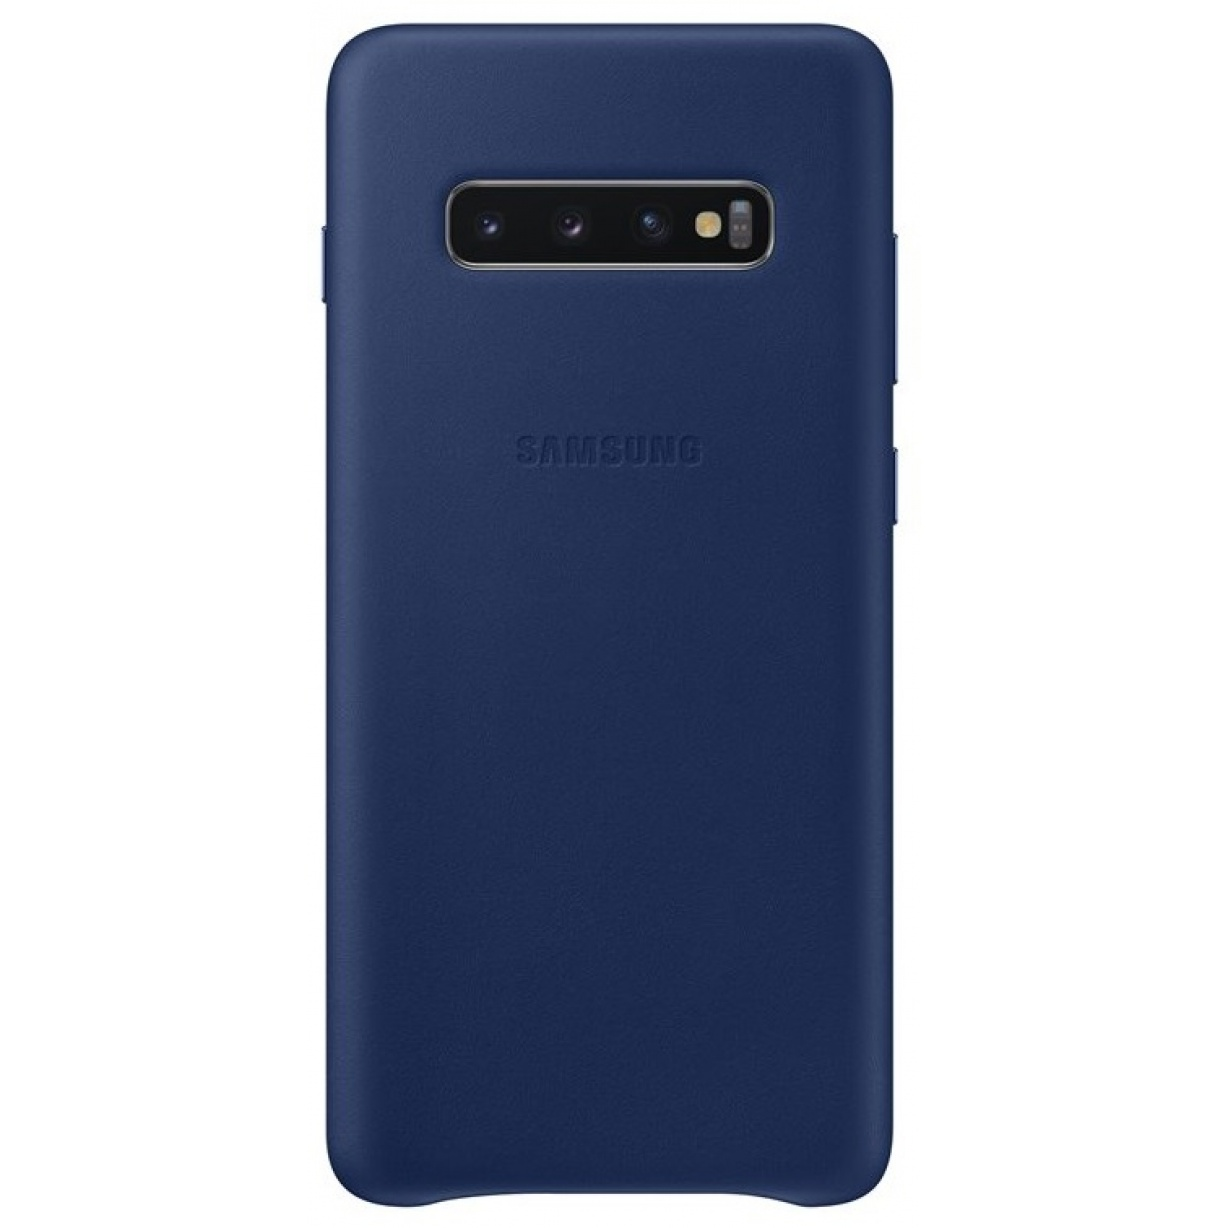 Nugarėlė G975 Samsung Galaxy S10+ Leather Cover Navy